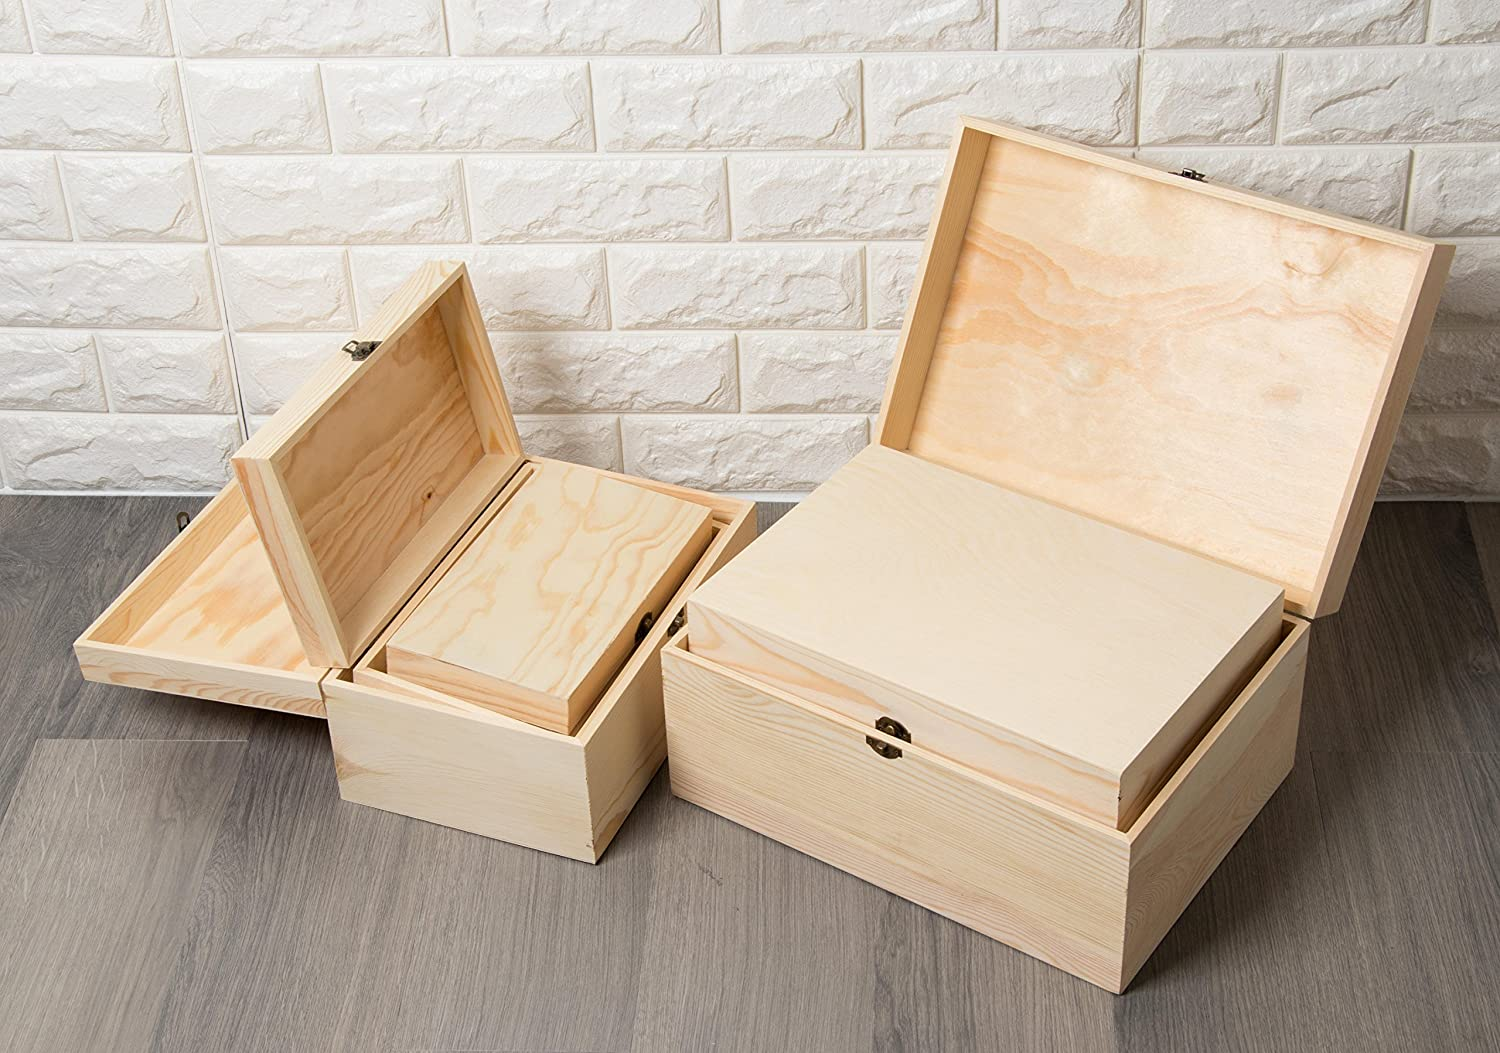 5-Piece Hinged-Lid Nesting Boxes for Arts Crafts Unfinished Wood Hobbies and Home Storage Natural Wood Color Juvale Wooden Boxes